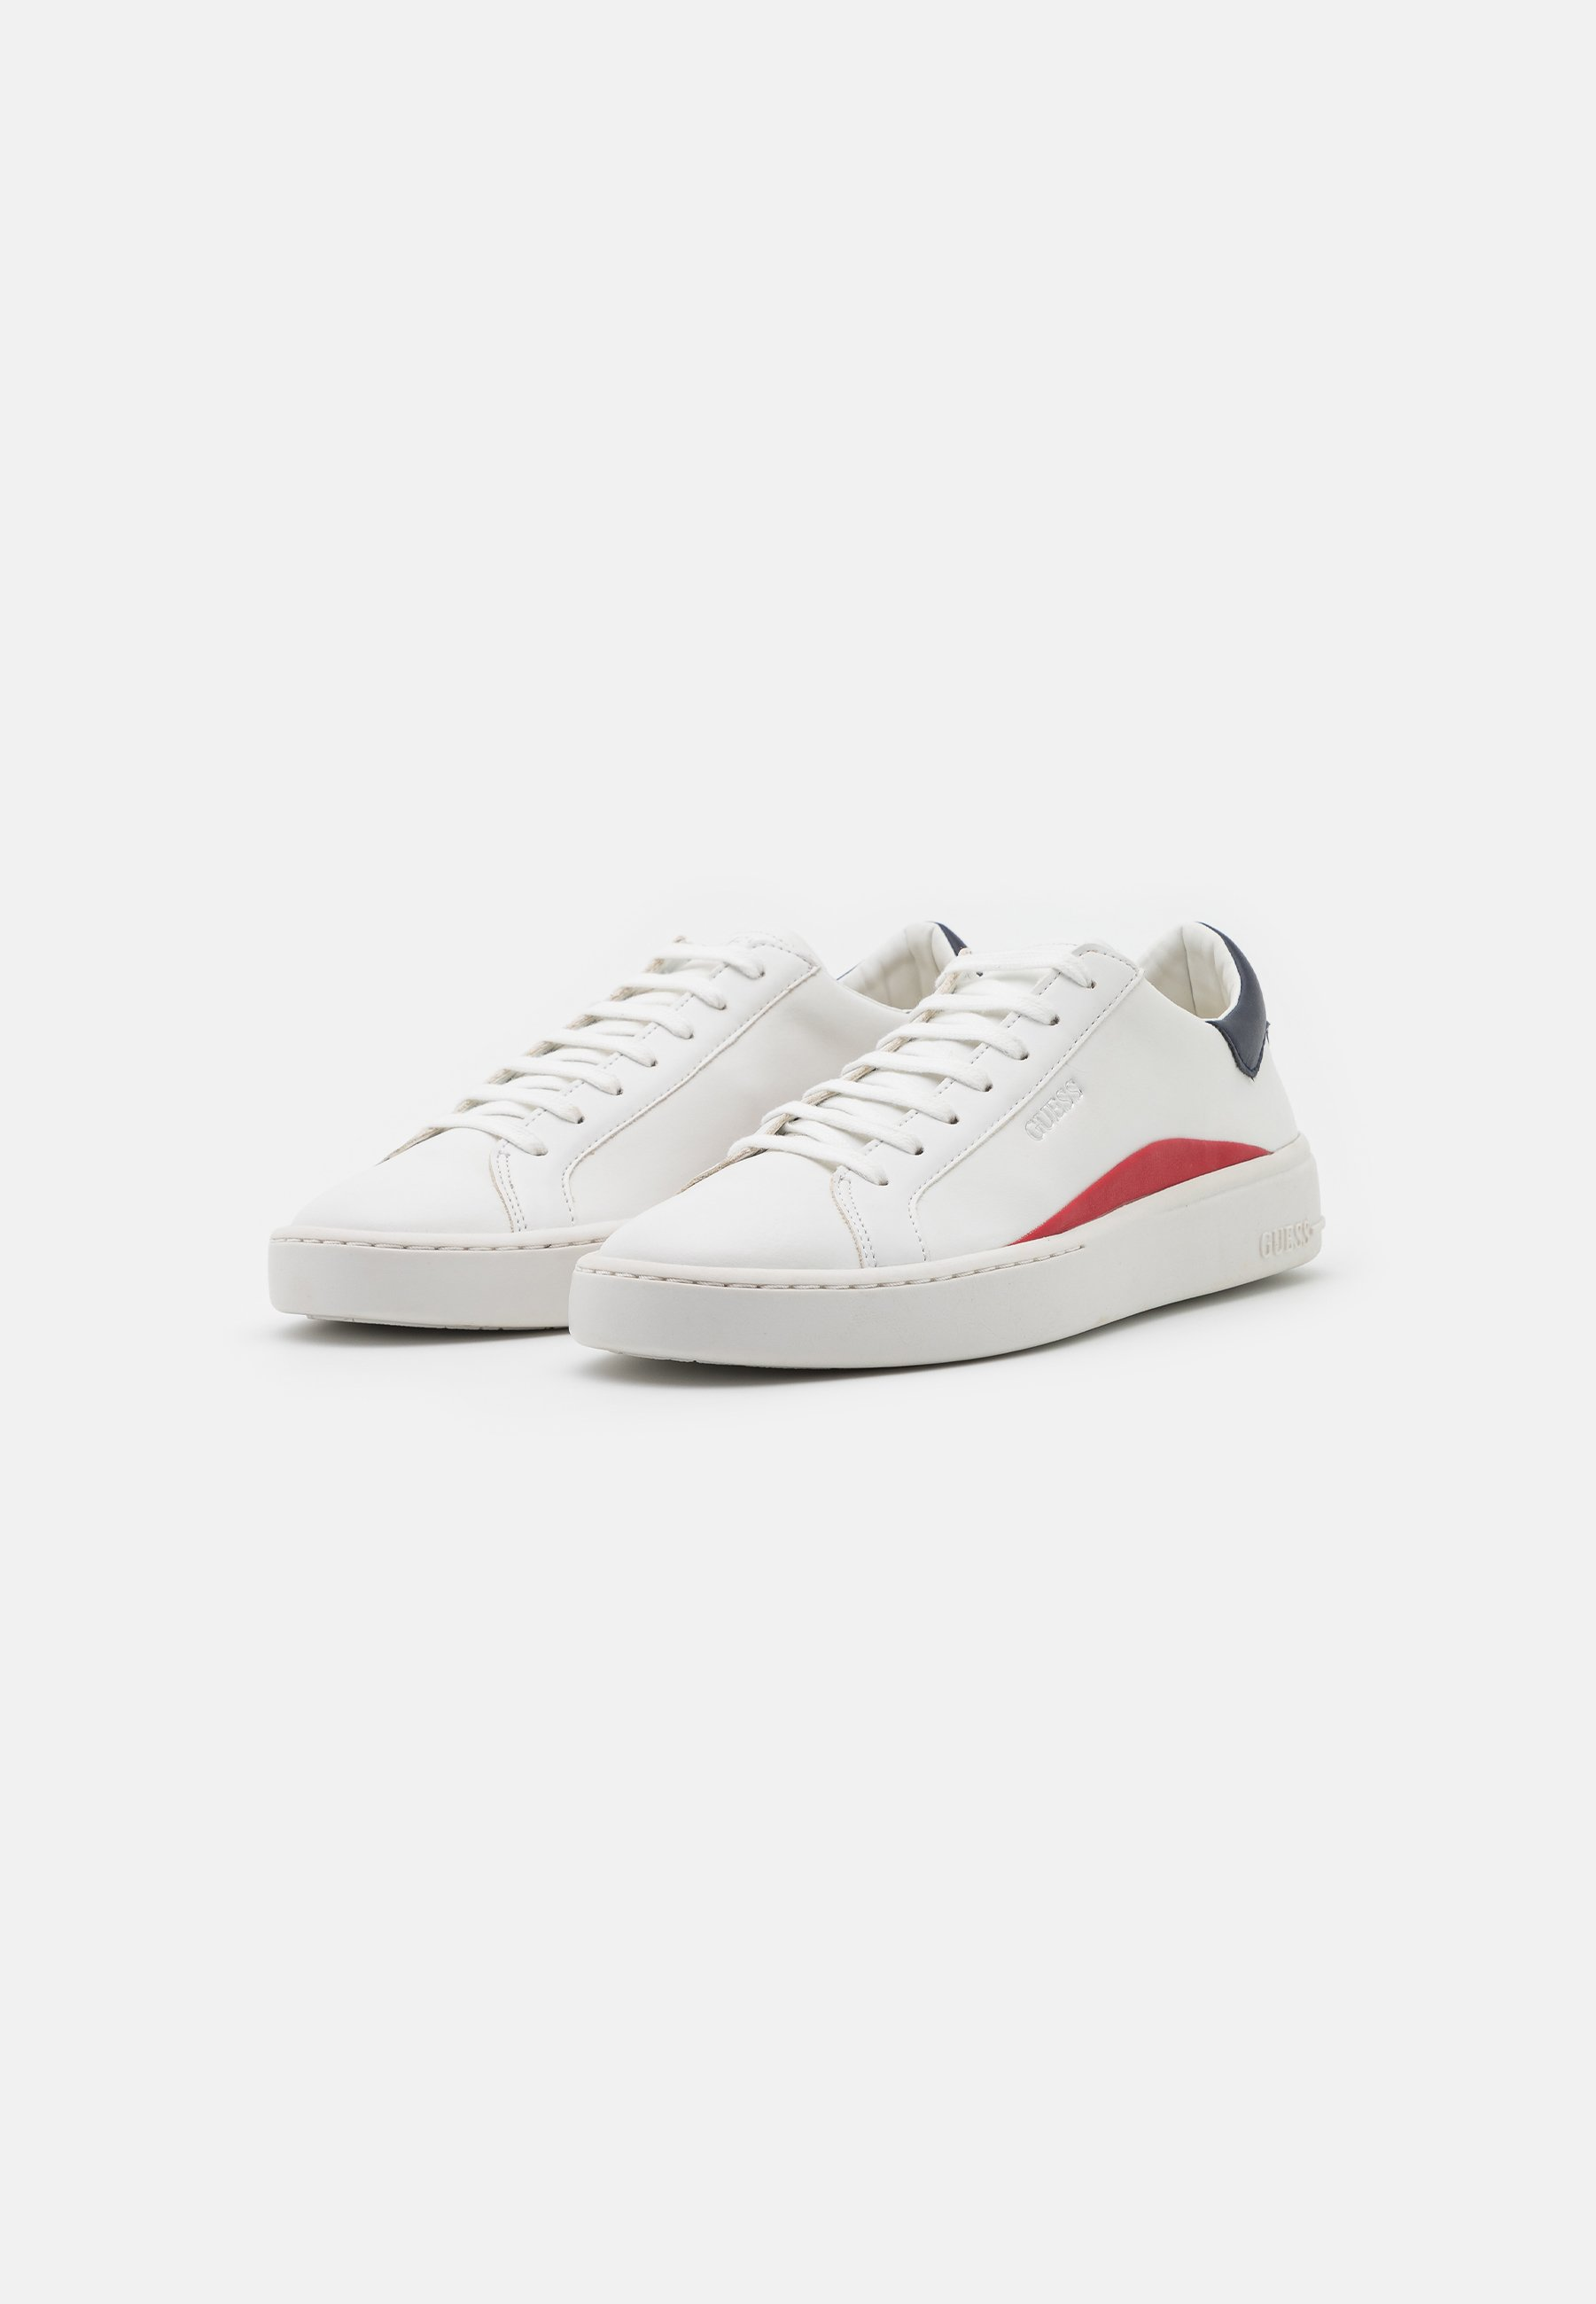 Guess Verona - Sneakers White/red